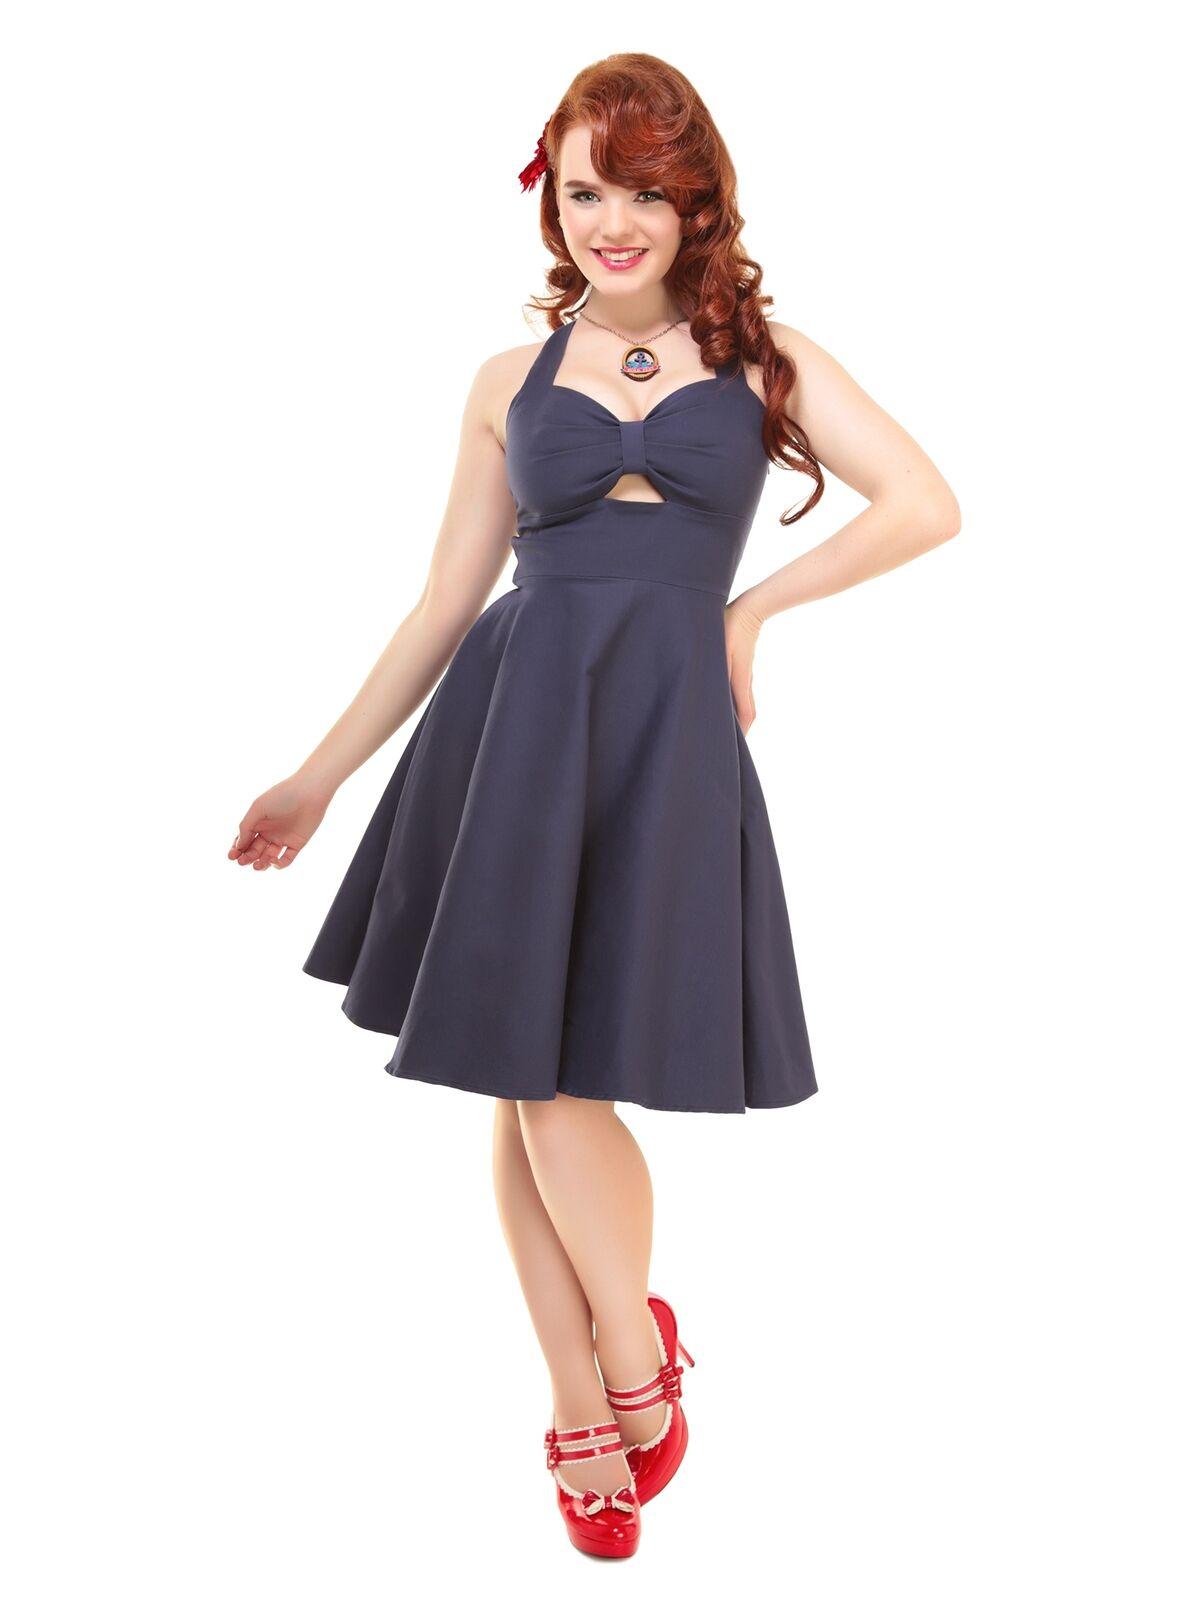 COLLECTIF VINTAGE NAVY blueE COLETTE SWING DRESS SZ 8-22 1950S FLARED